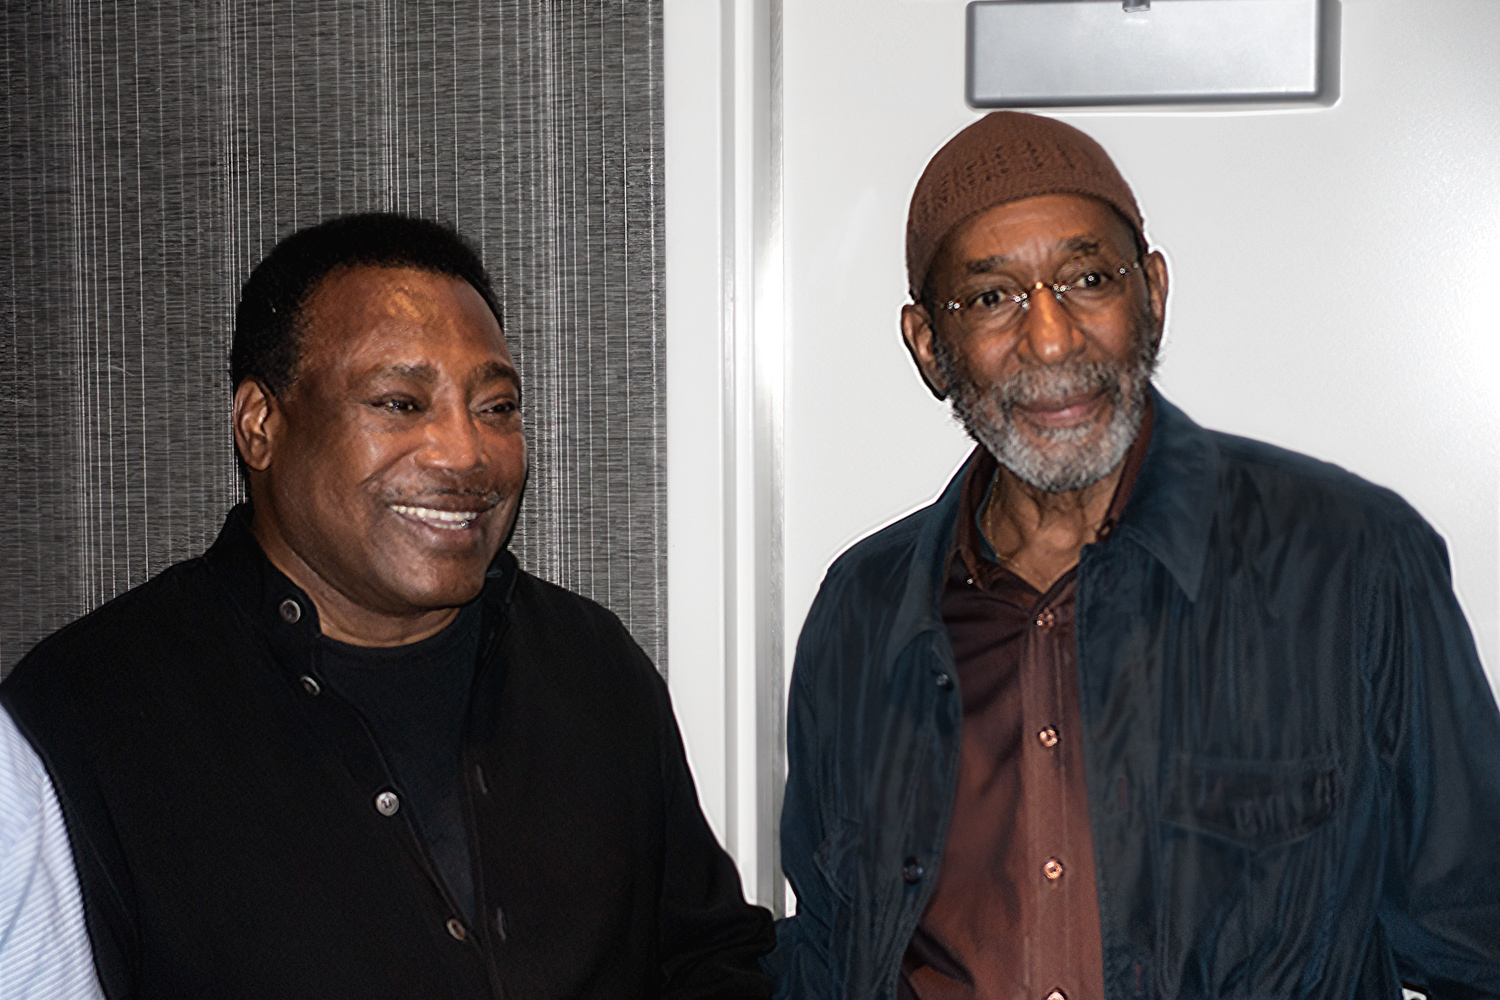 George Benson and Ron Carter